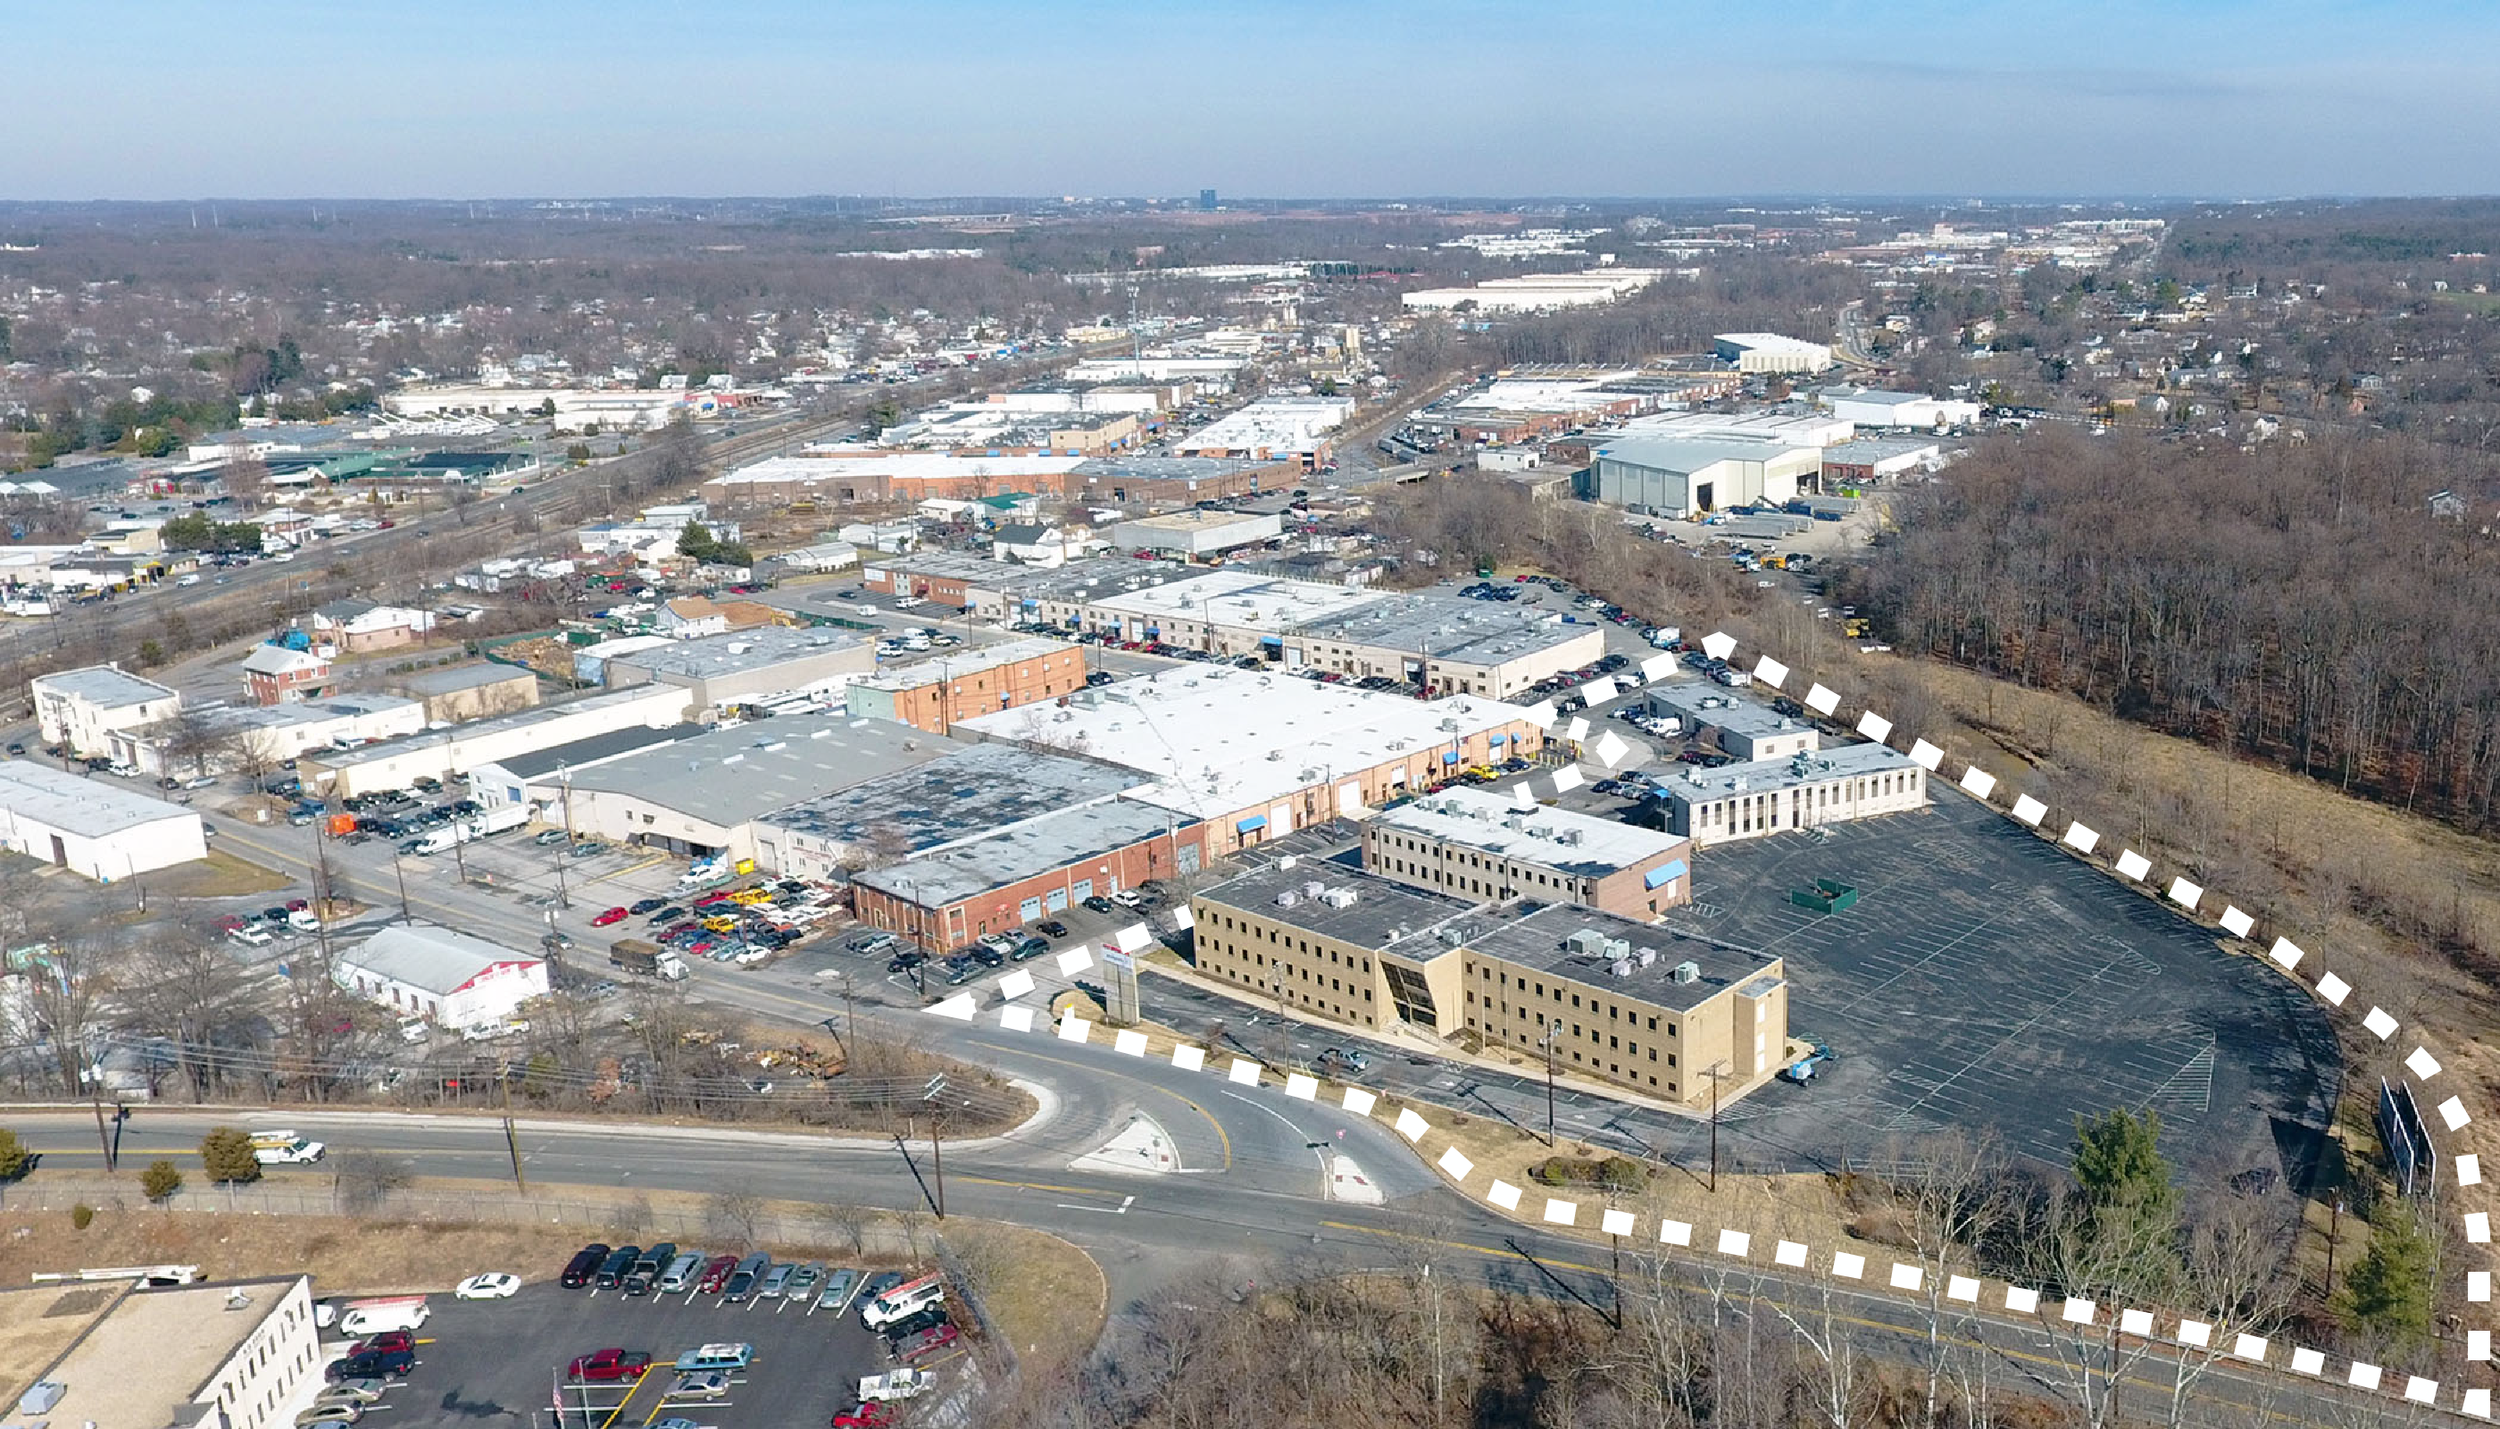 February 2018 aerial view of site looking northbound with Baltimore Avenue (US Route 1) in the background